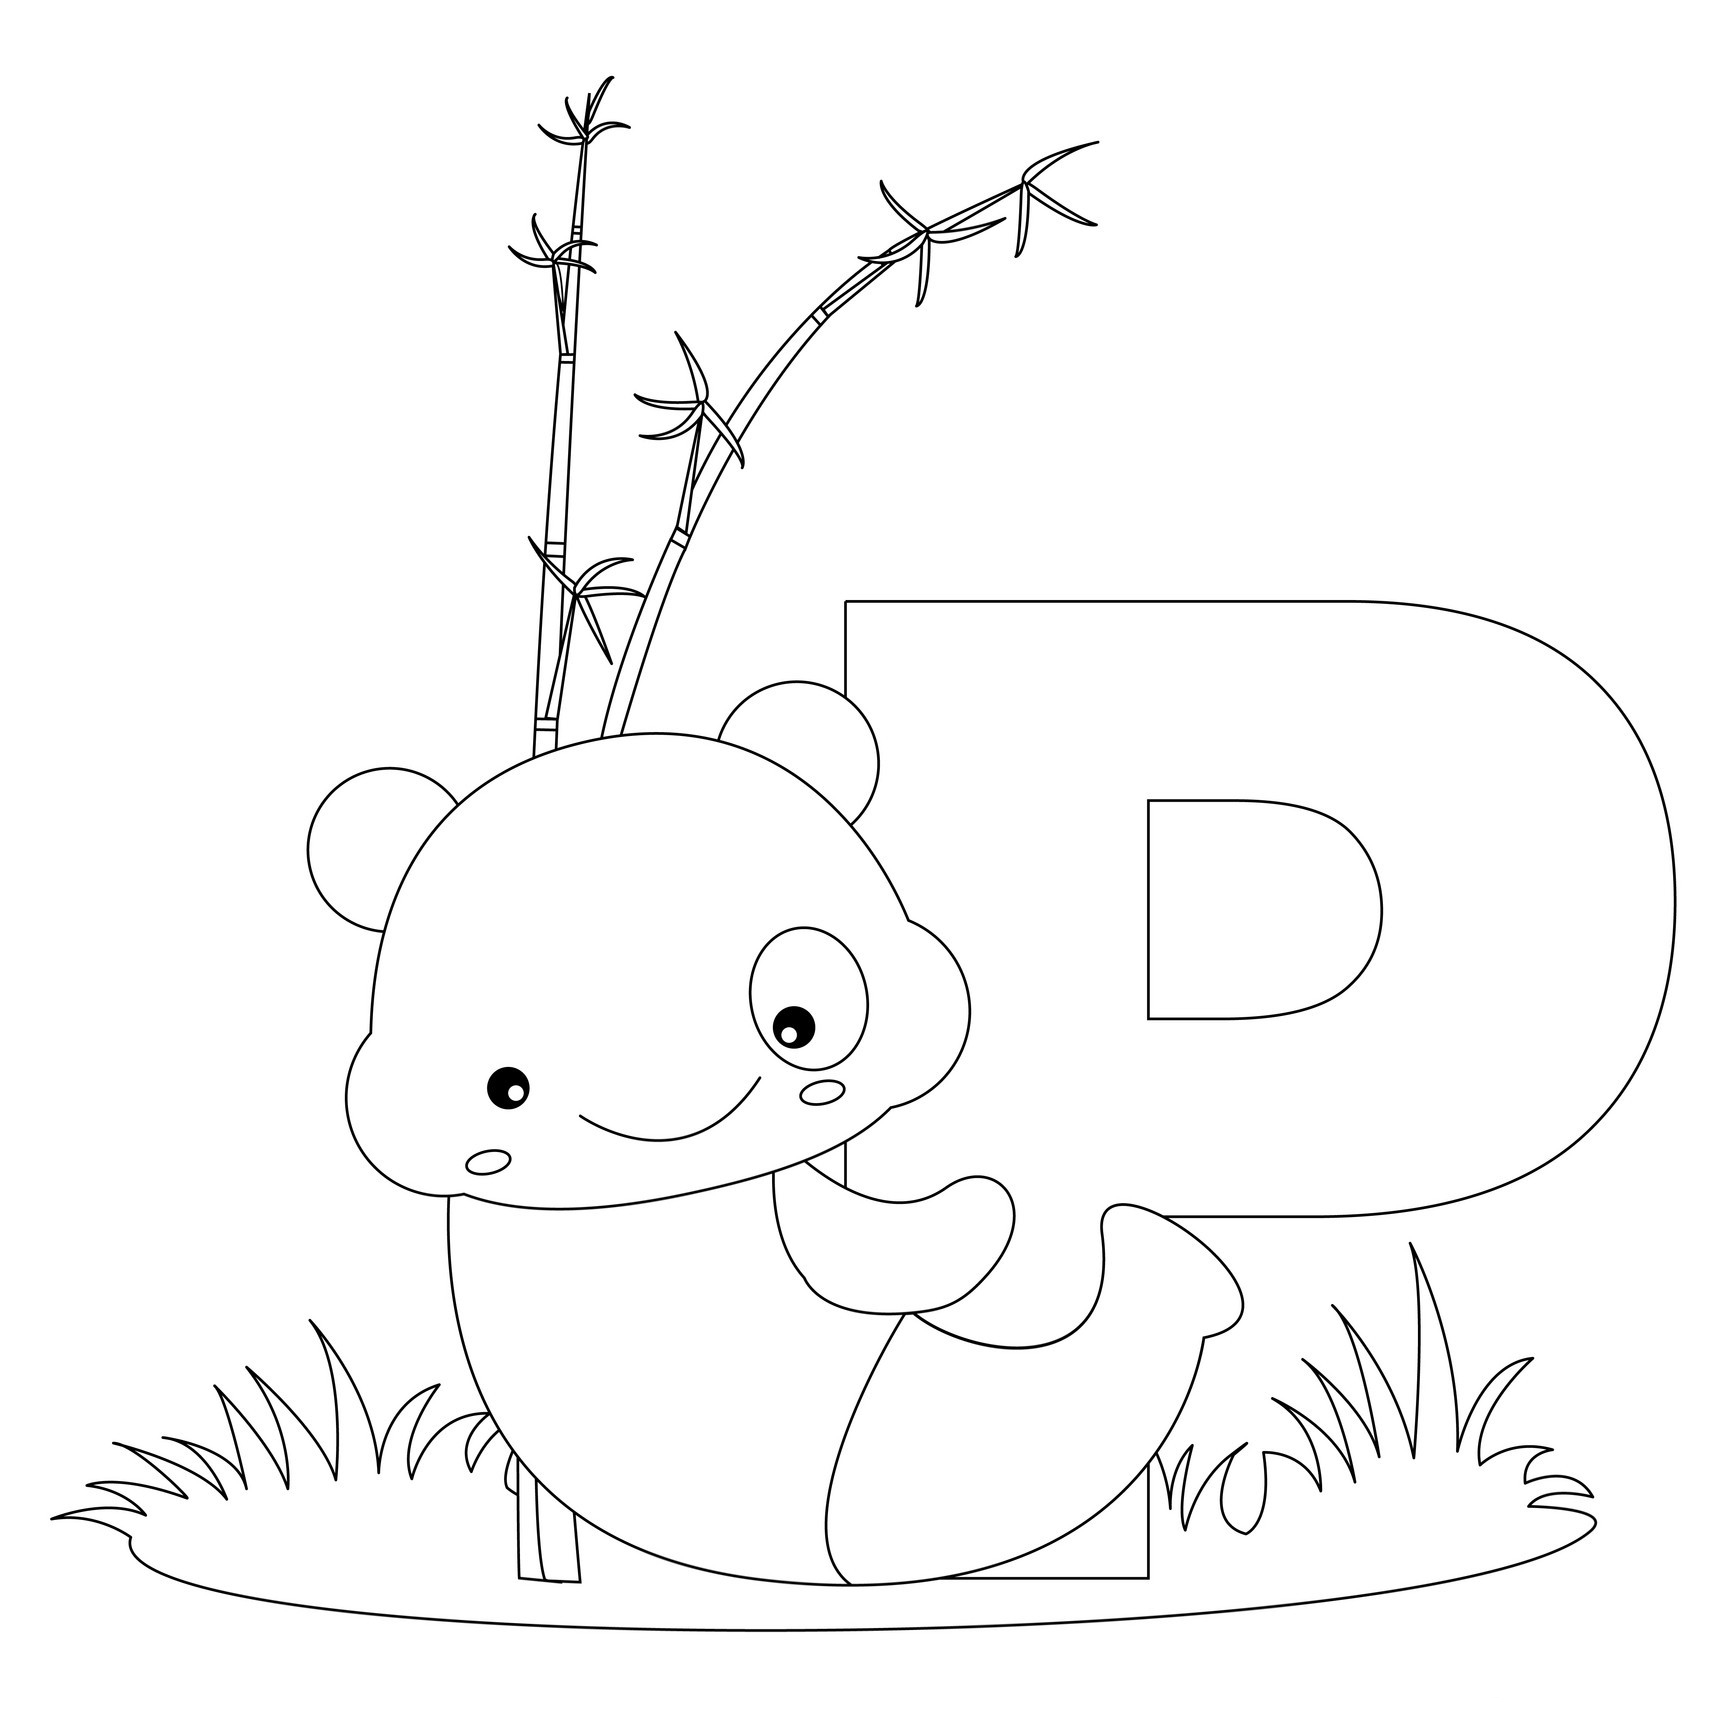 letter p coloring pictures free printable alphabet coloring pages for kids best coloring letter p pictures